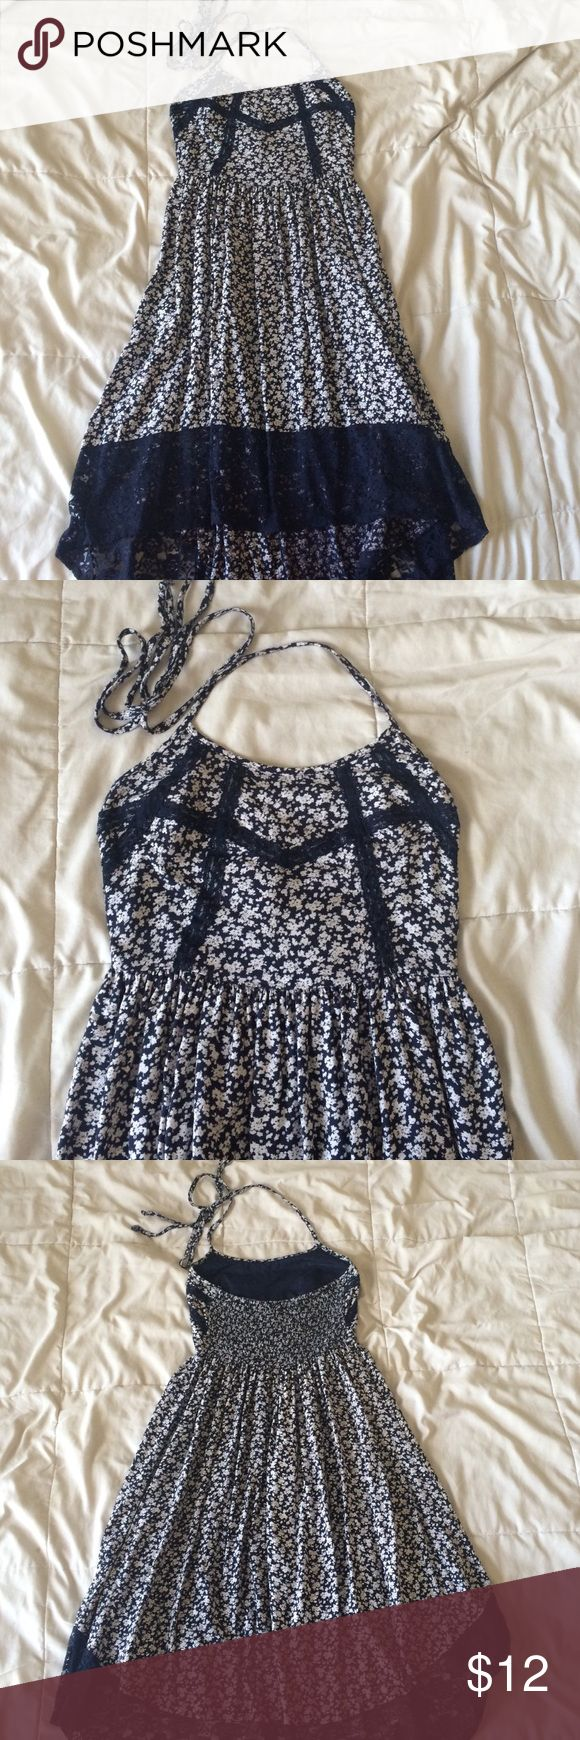 floral halter sundress halter dress with navy and white floral pattern, lace accents, and hi-lo hemline. 100% rayon with 100% cotton lining. Band of Gypsies Dresses High Low